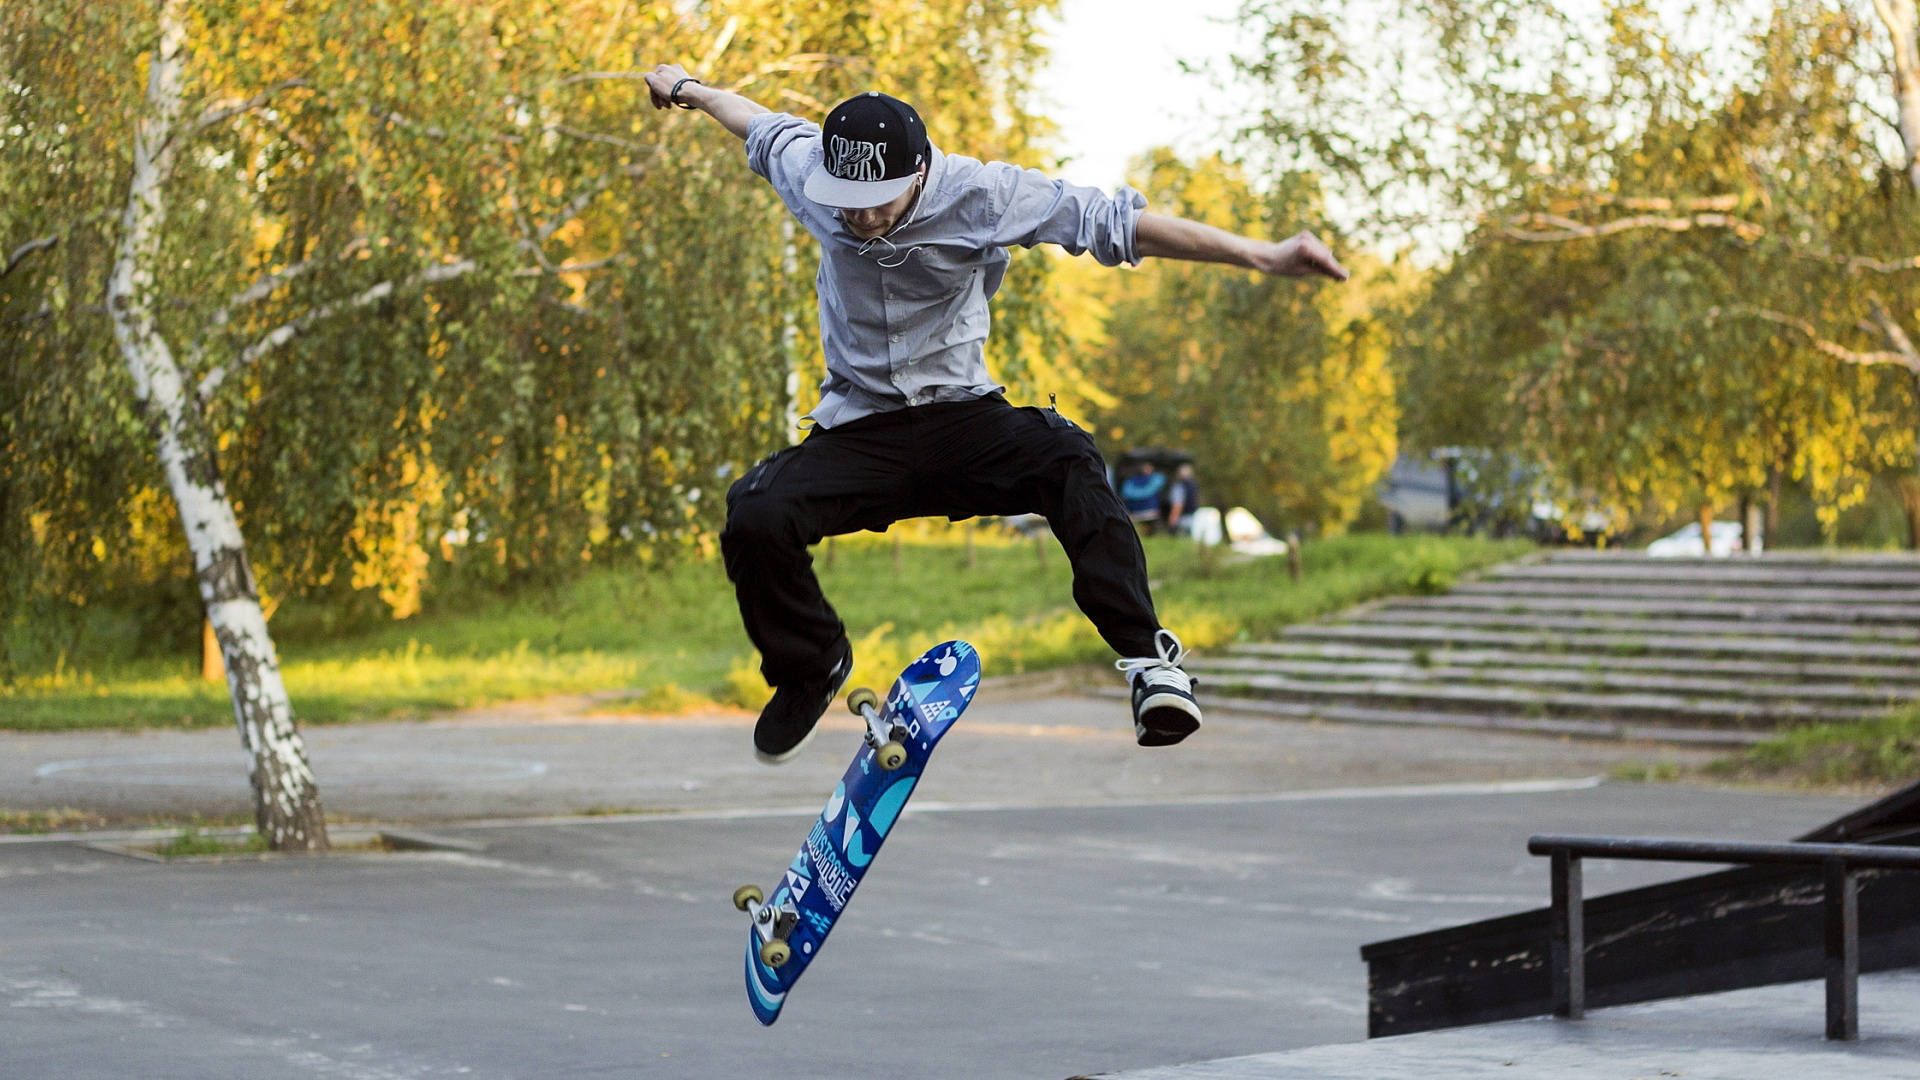 Coole Skateboards